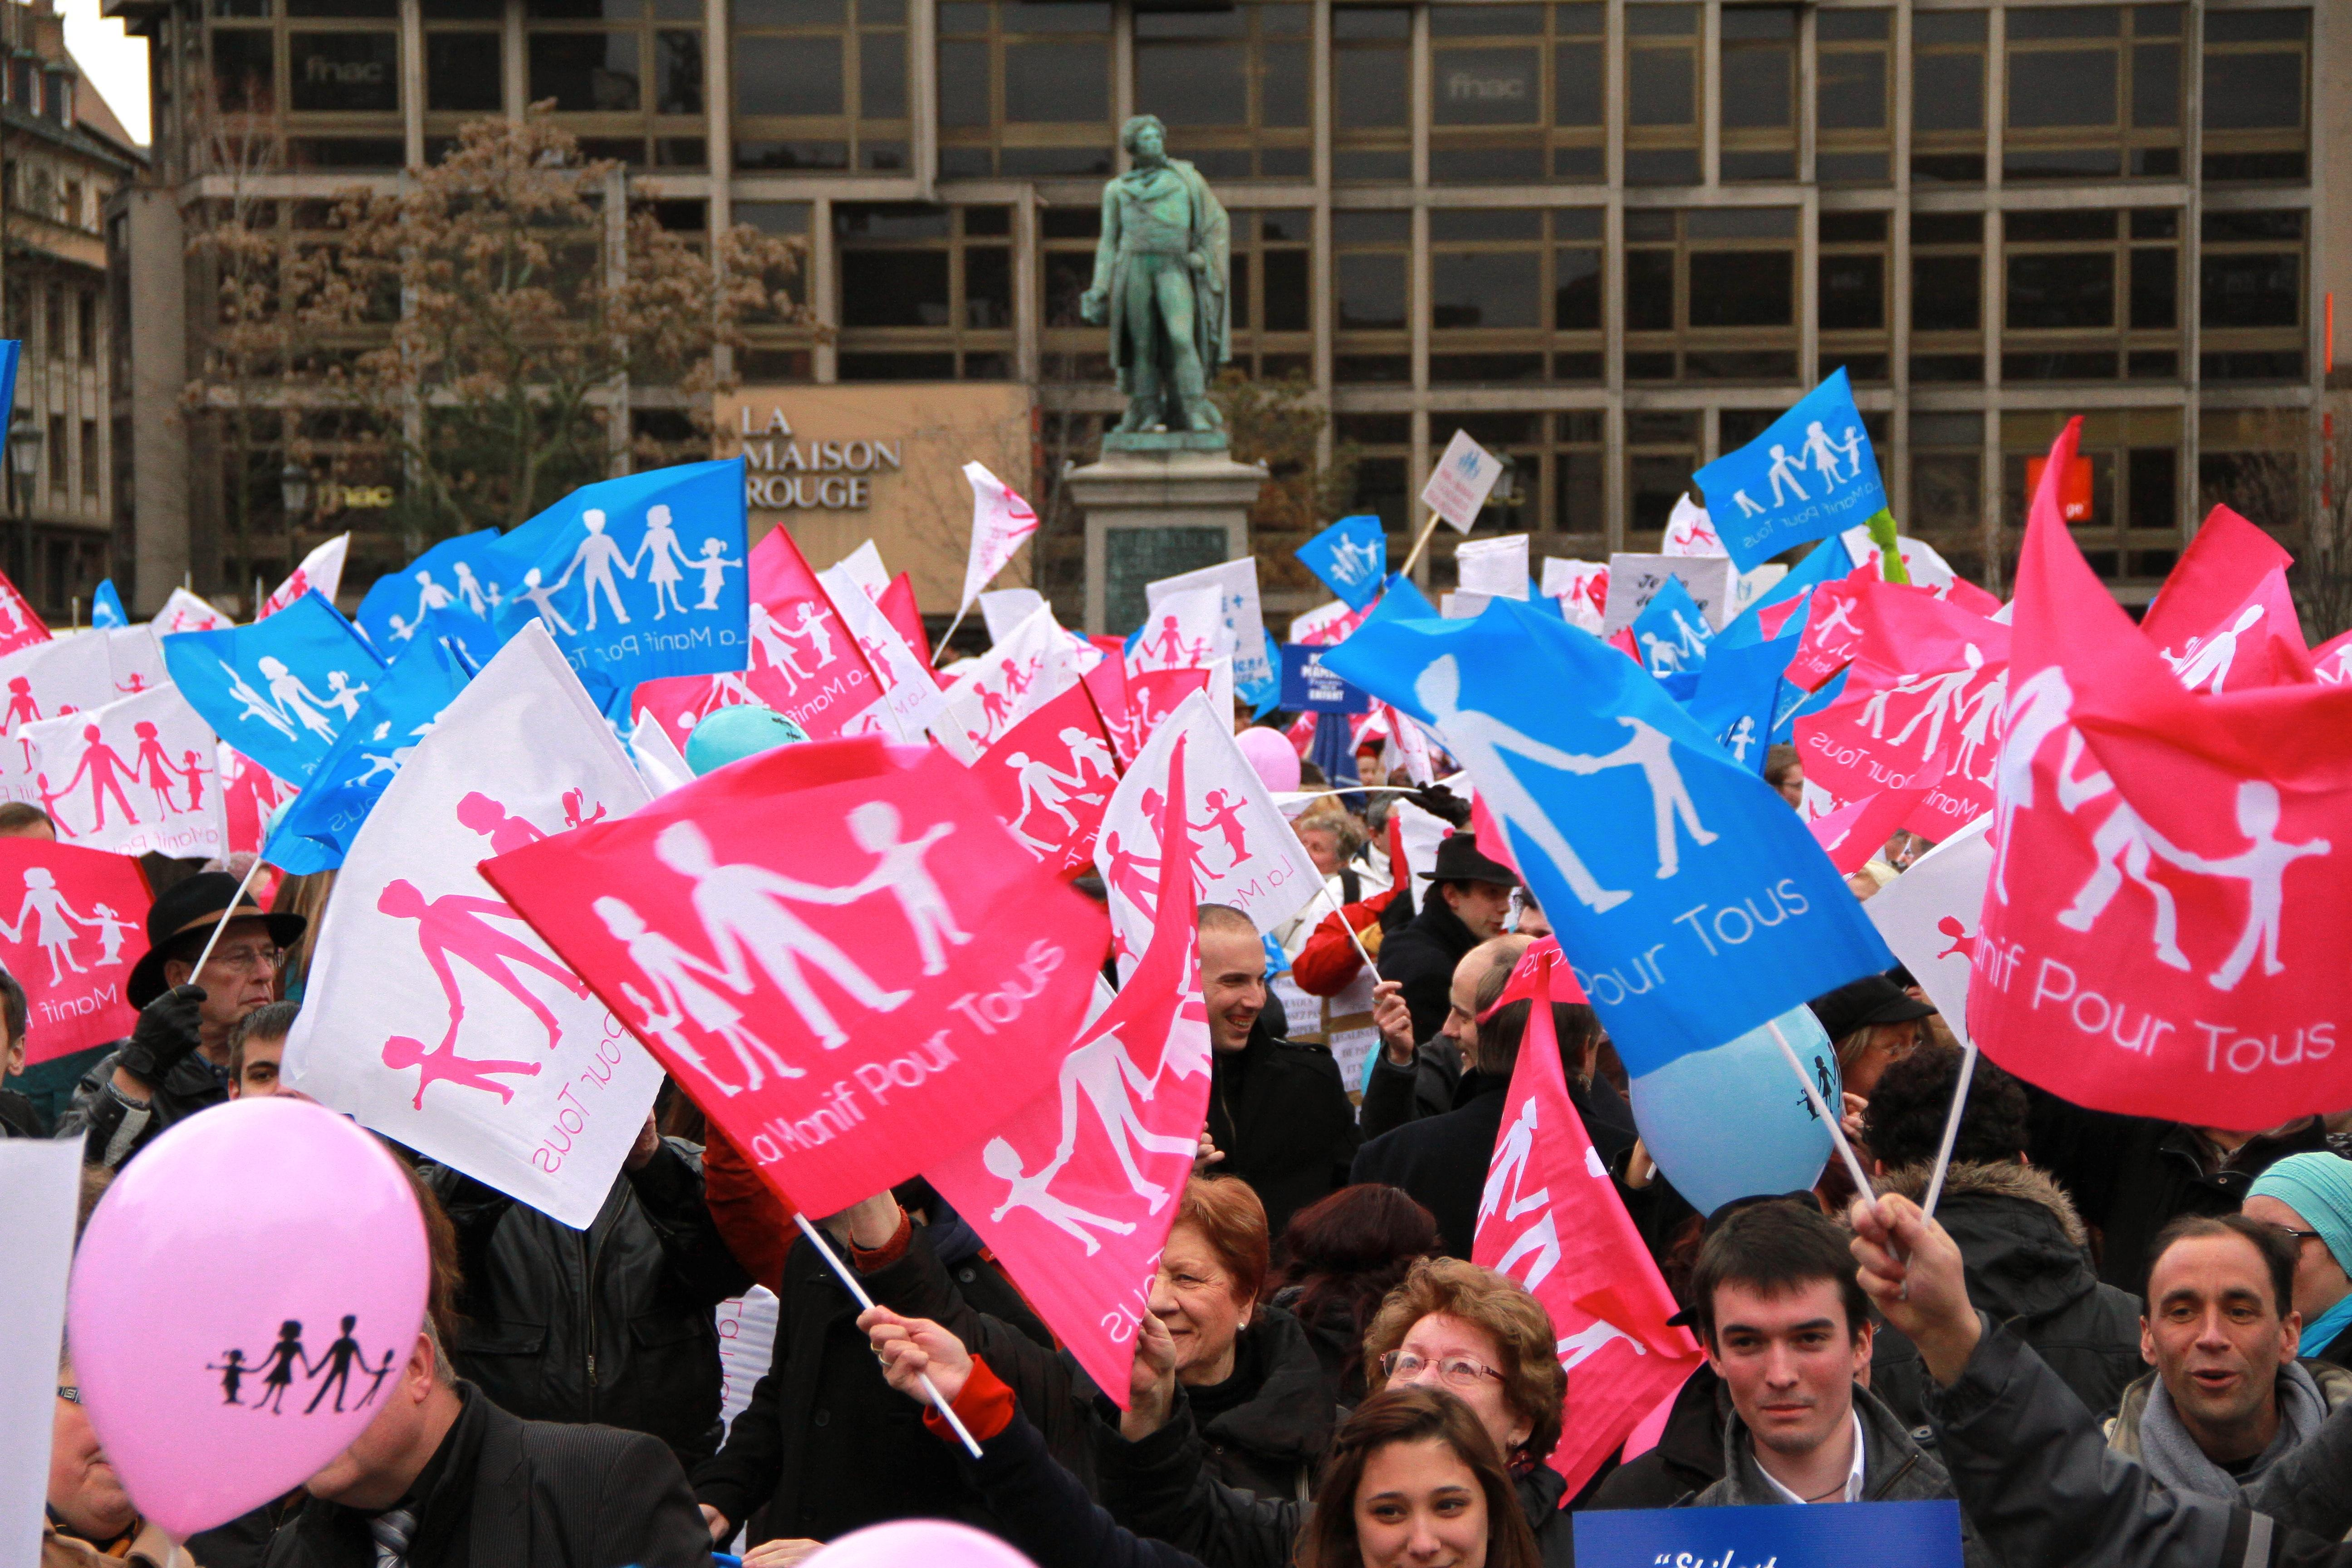 Demonstration against marriage equality in Strasbourg, France, February 2013.